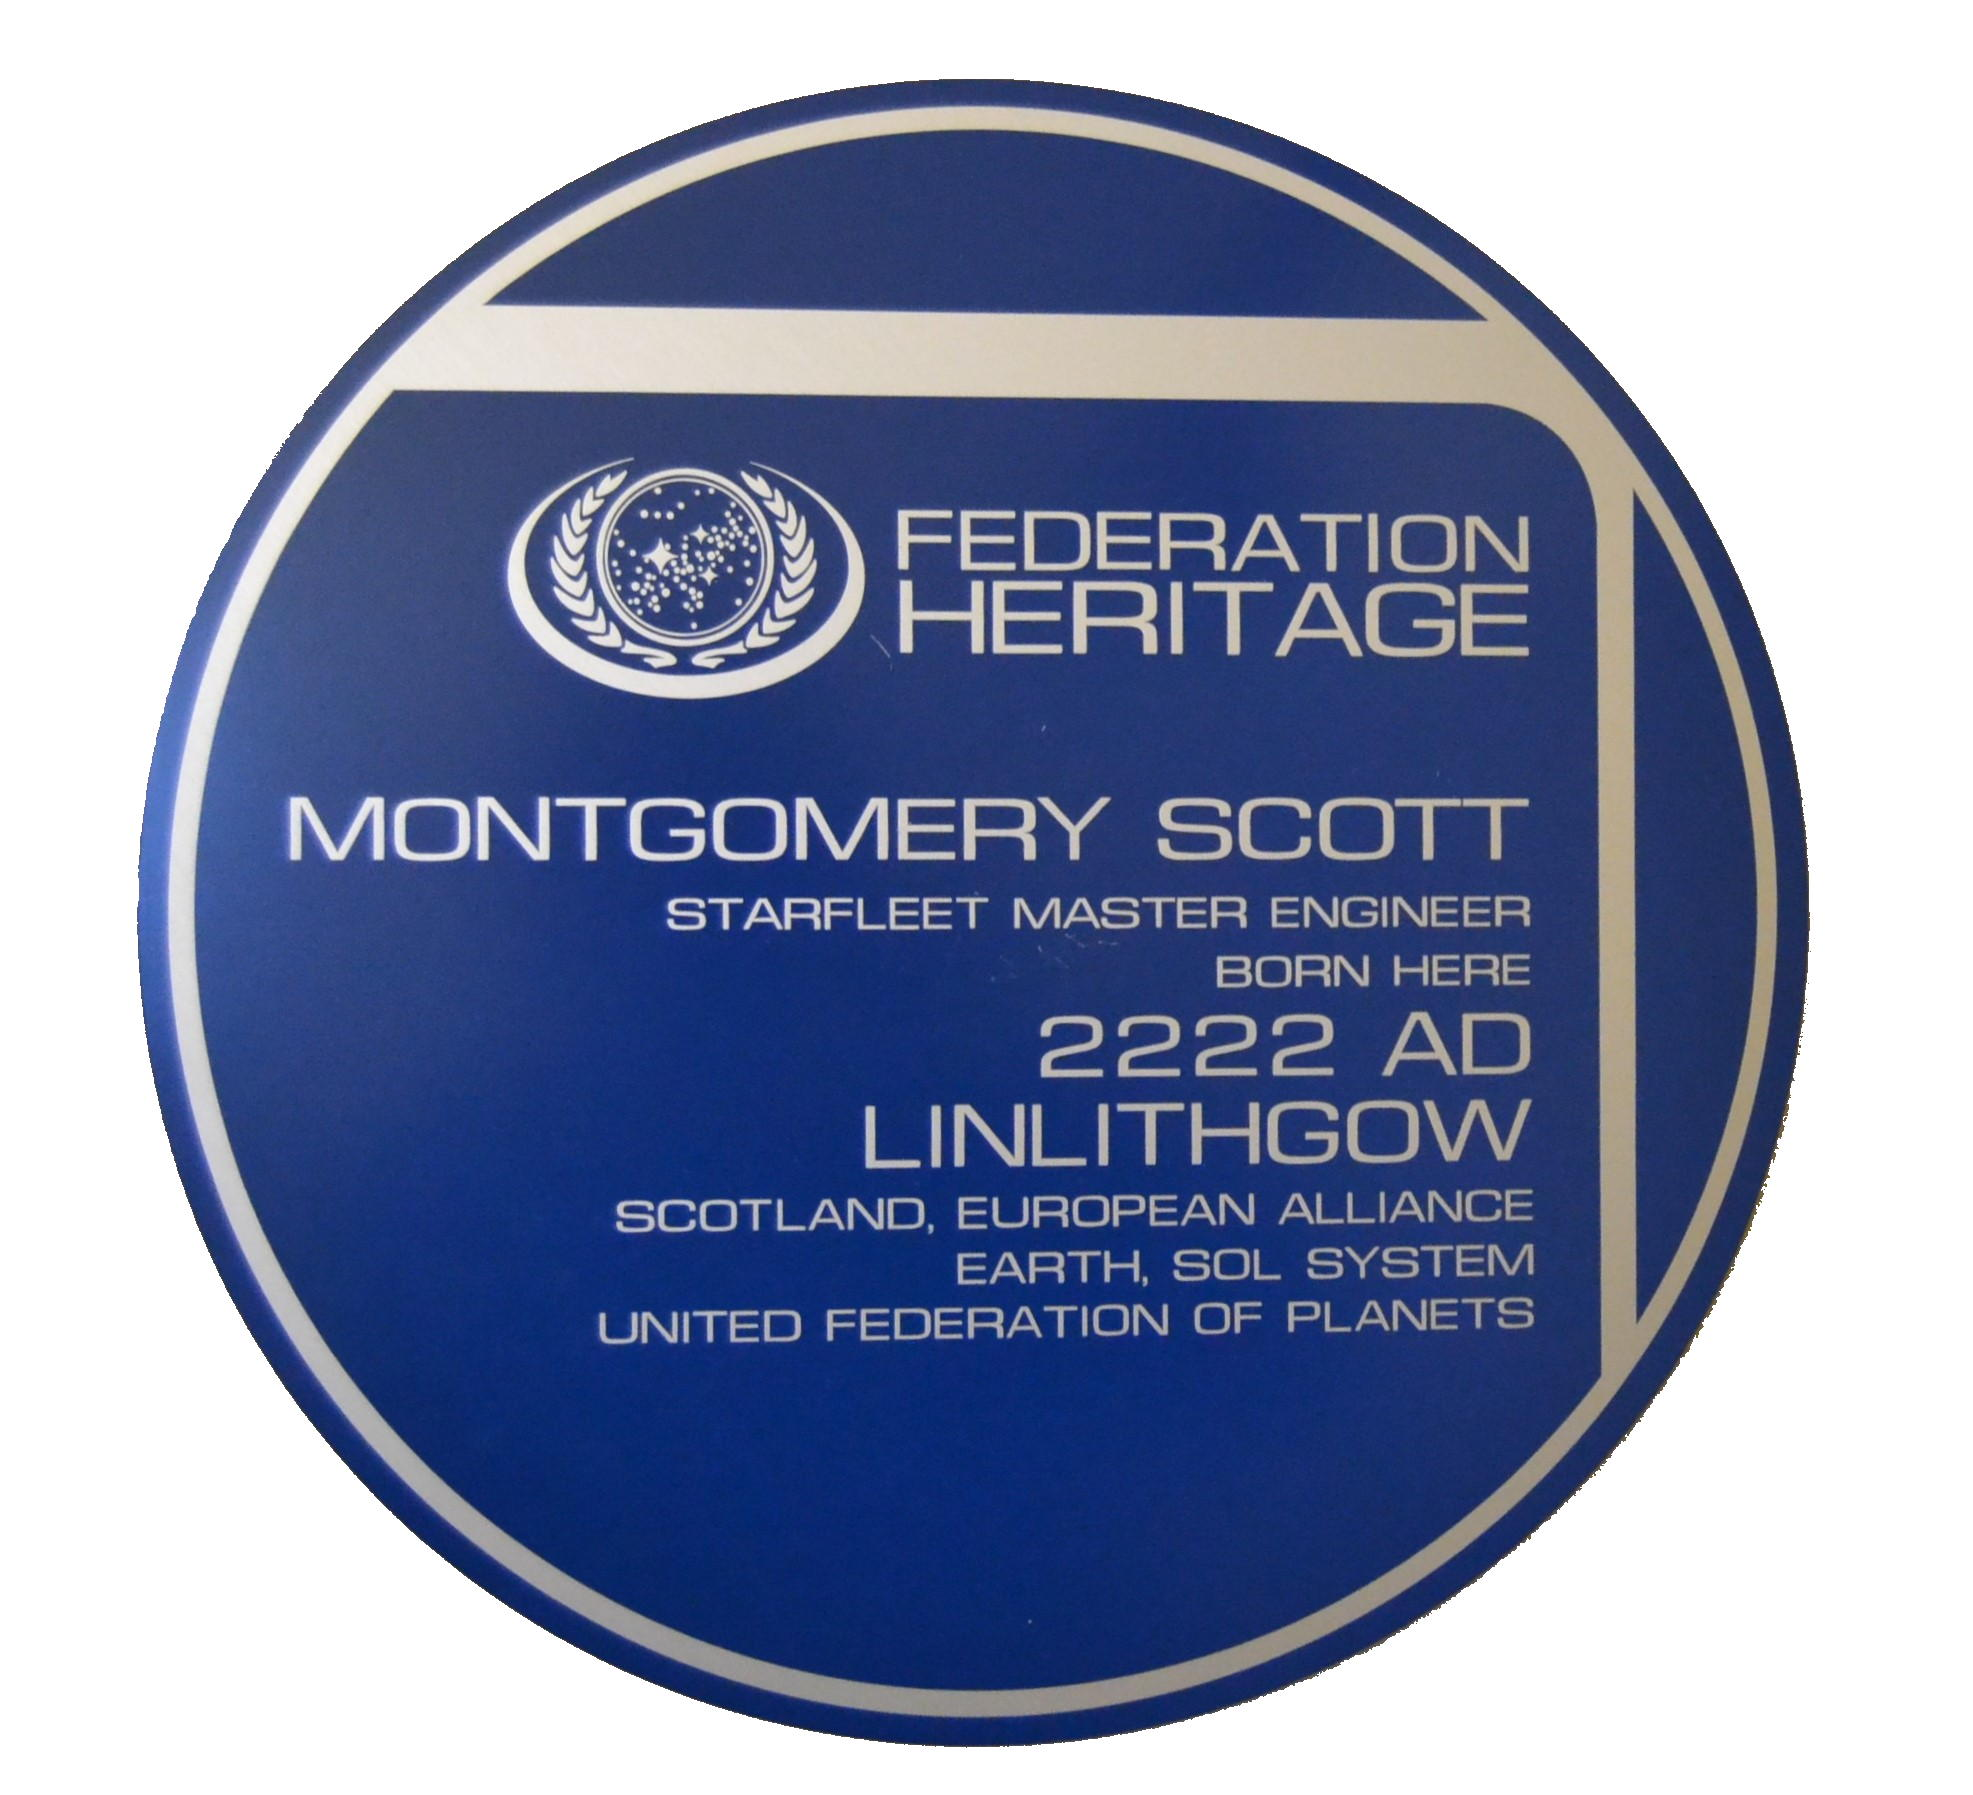 Miracle workers areborn in linlithgow - On 28th June 2222 AD, Montgomery 'Scotty' Scott, the man who will become the greatest engineer in the galaxy will be born - in Linlithgow.Visit our Museum to see the unique blue plaque recording our future heritage for yourself!